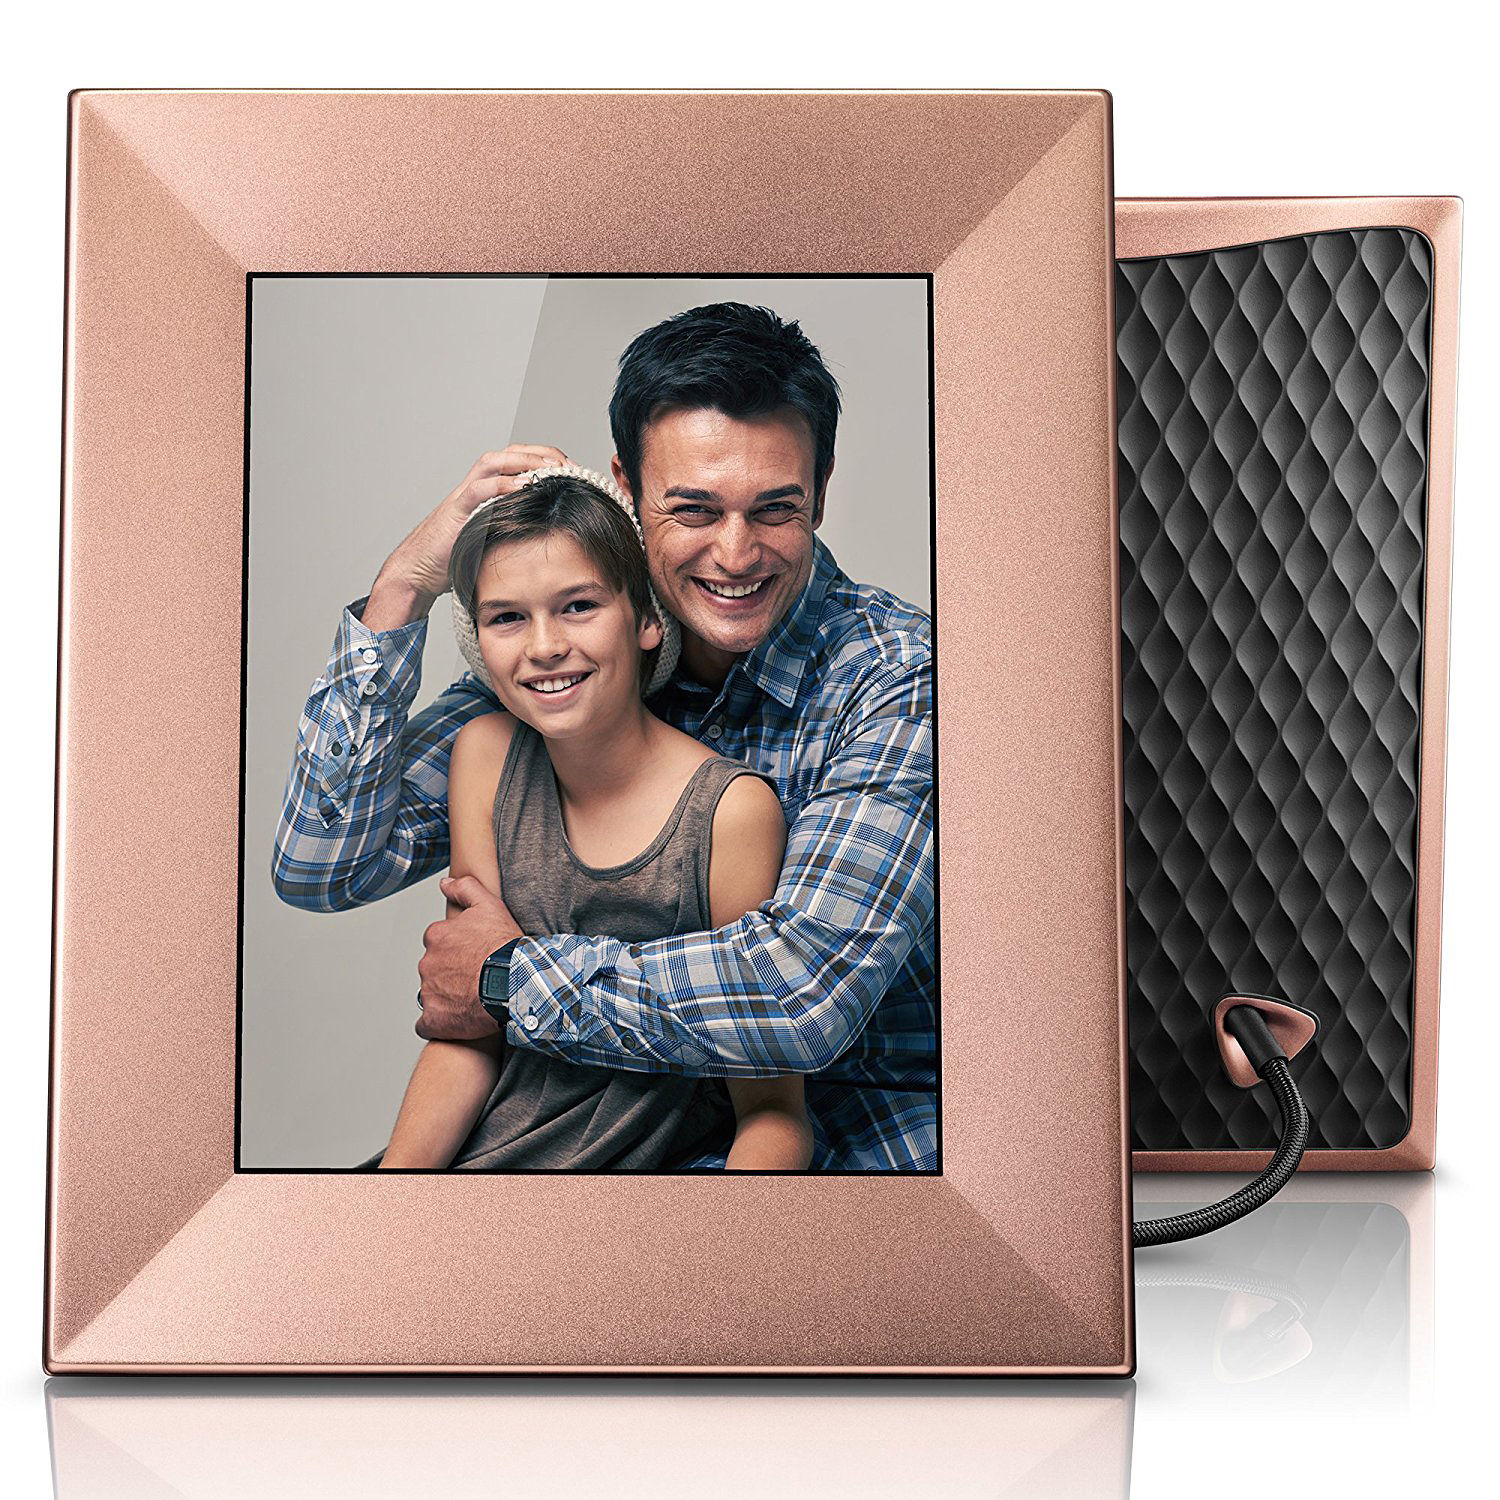 Digital picture frames albums bh photo video nixplay iris 8 digital photo frame peach copper jeuxipadfo Image collections